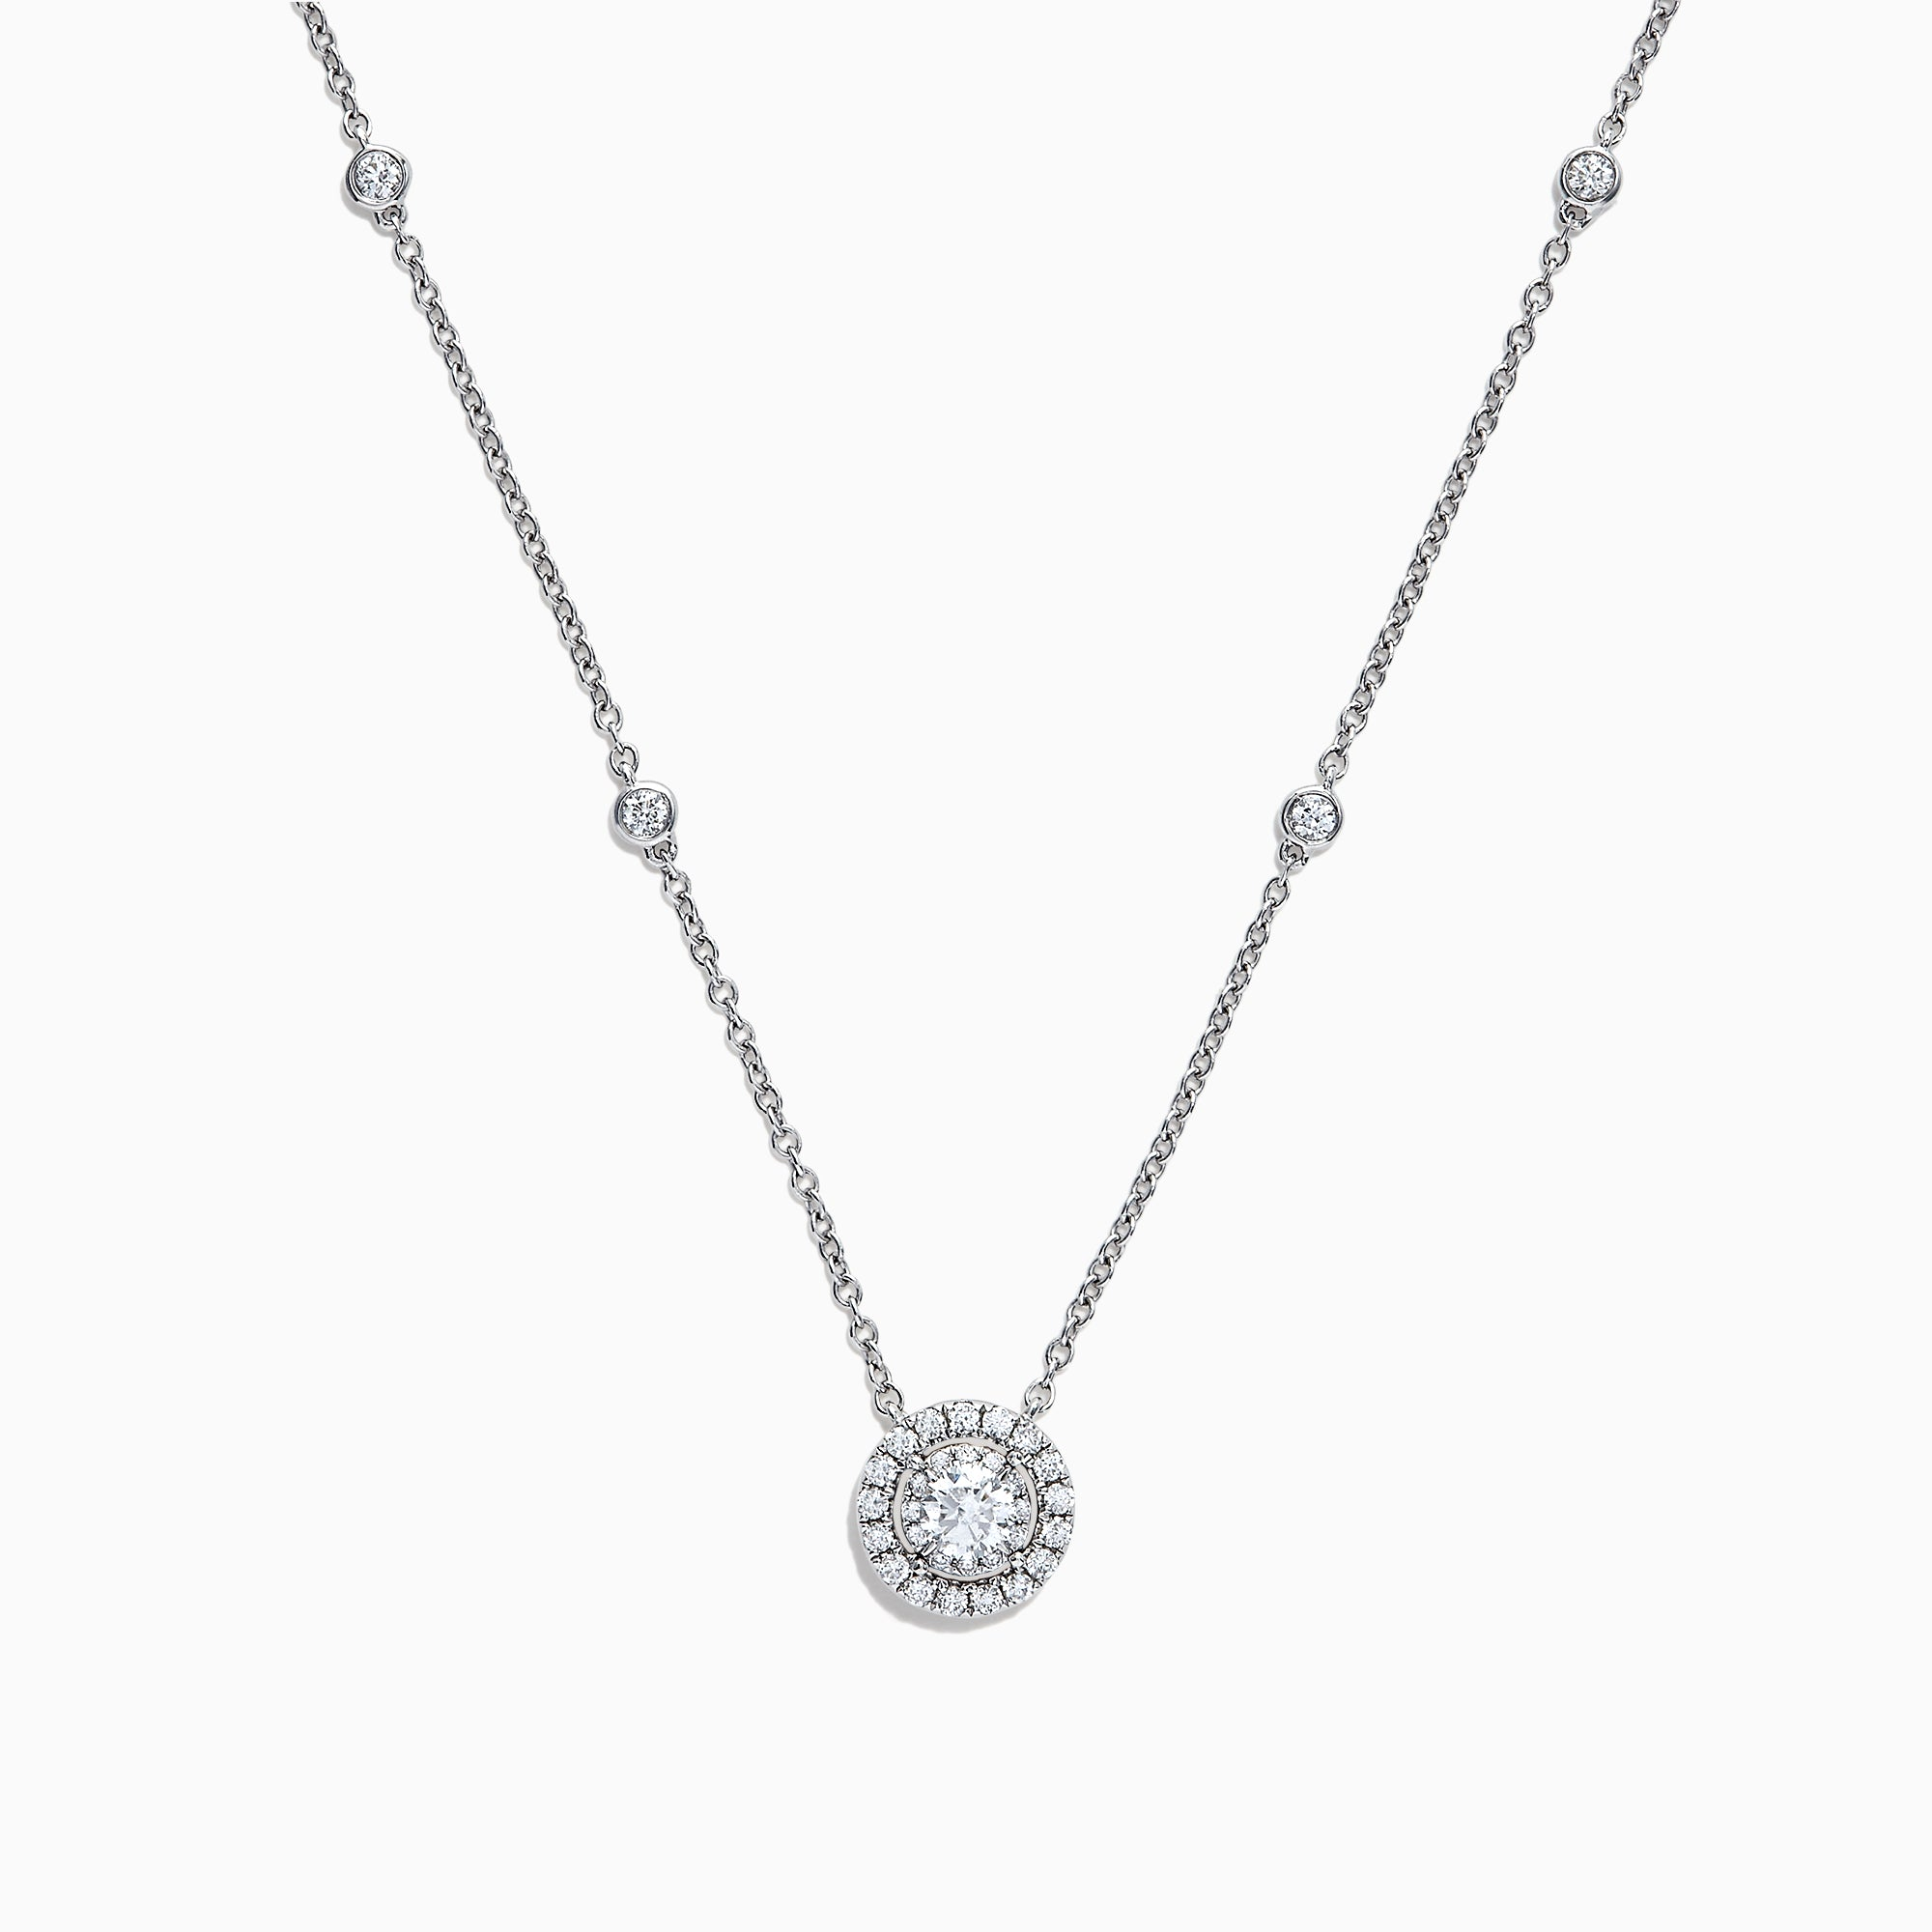 Effy Pave Classica 14K White Gold Diamond Halo Necklace, 0.54 TCW